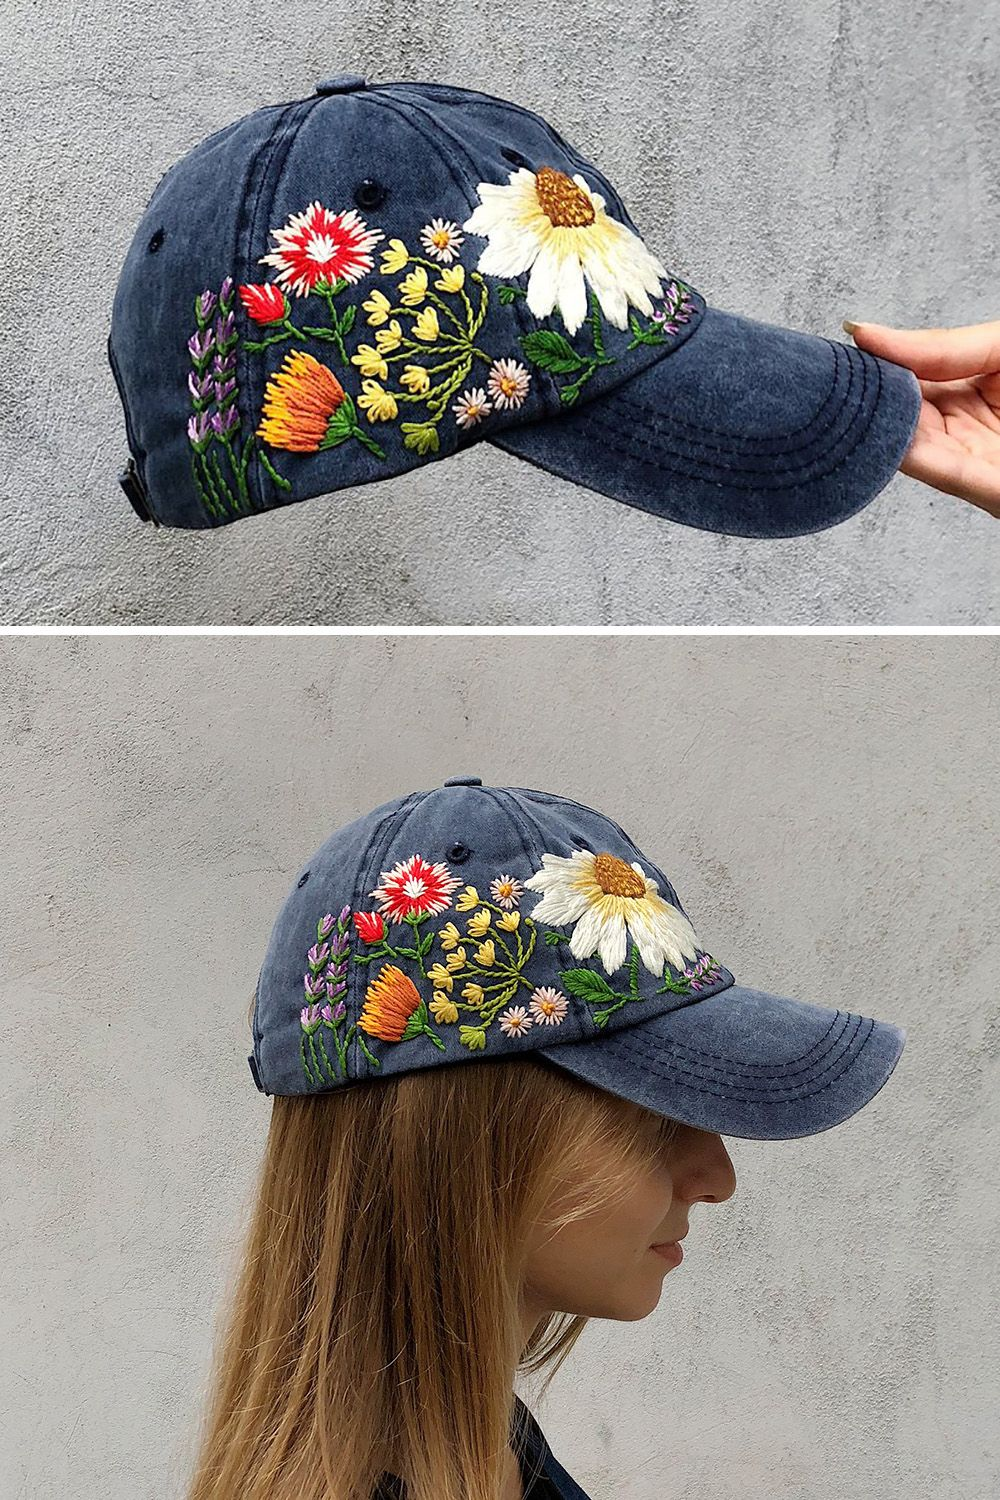 Hand Embroidered Hat Embroidered Flower Hat Embroidery Hat Etsy In 2021 Hand Embroidered Hat Hat Embroidery Embroider Hat